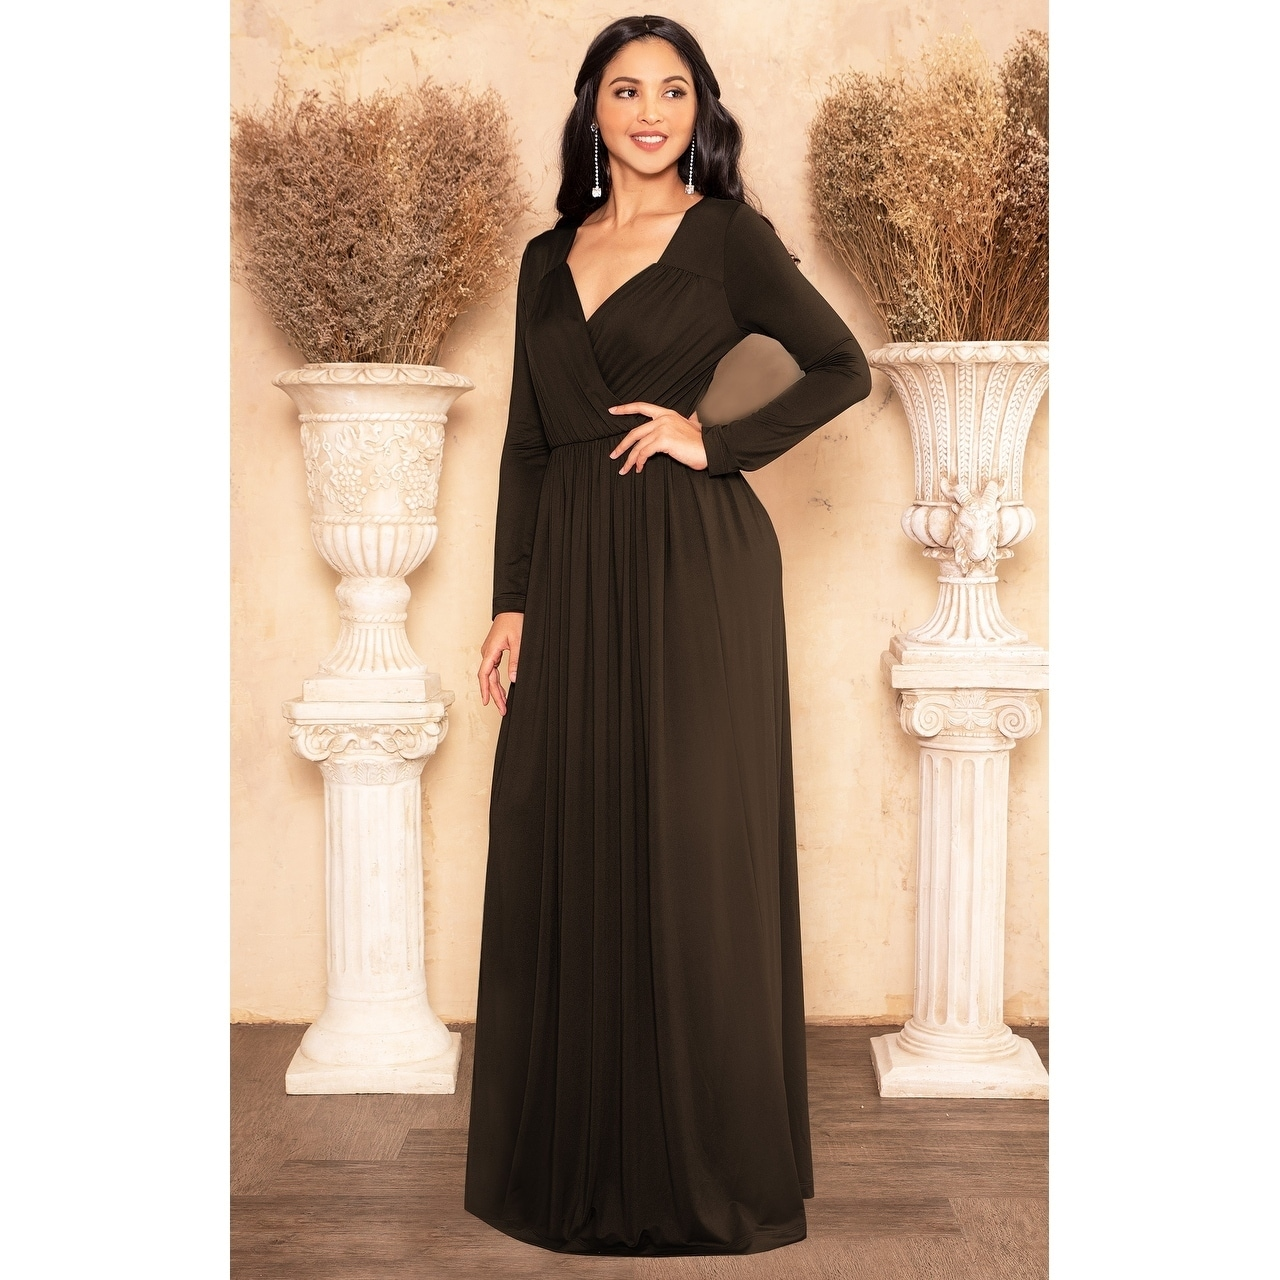 48f8dbe9ce Shop KOH KOH Long Sleeve Flowy Slit Sexy Wrap Empire Waist Maxi Dress Gown  - Free Shipping On Orders Over  45 - Overstock - 10835726